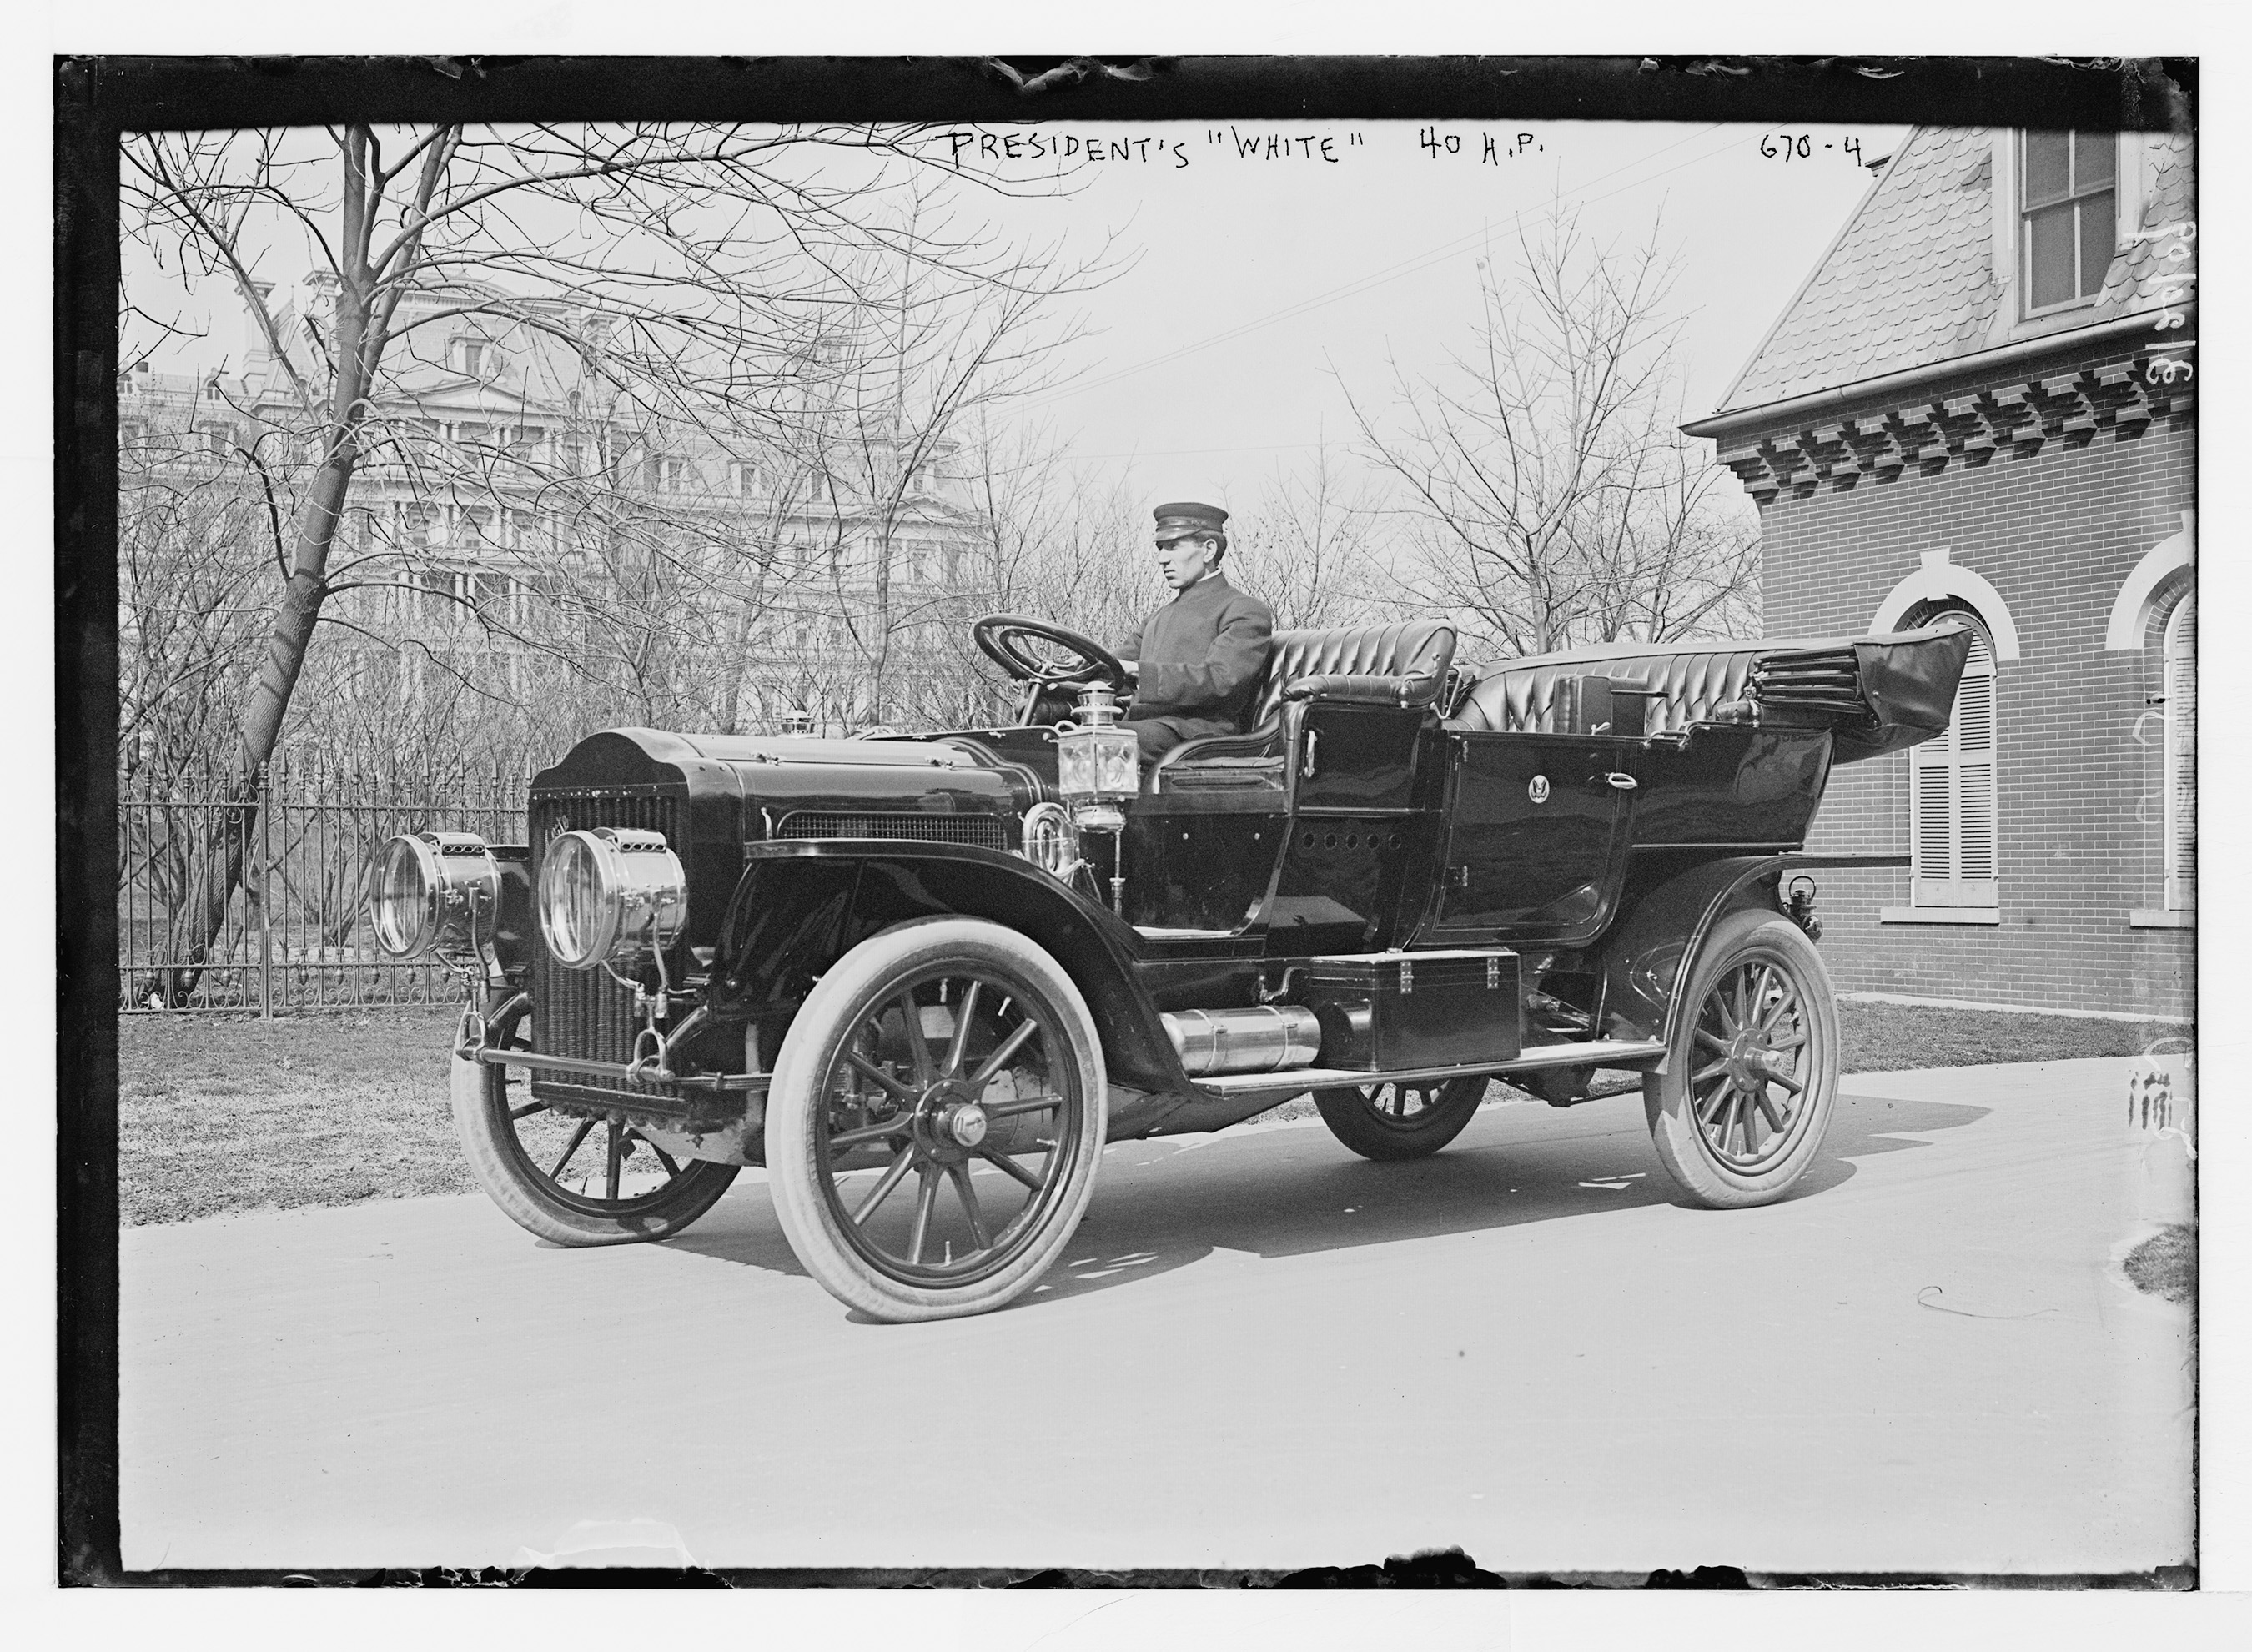 George H. Robinson, President Taft's Chauffeur and the first presidential chauffeur in American history, helped acquire the White House fleet and regularly drove the White Steam Car during Taft's presidency. (Photo courtesy of the Historic Vehicle Association/Library of Congress)